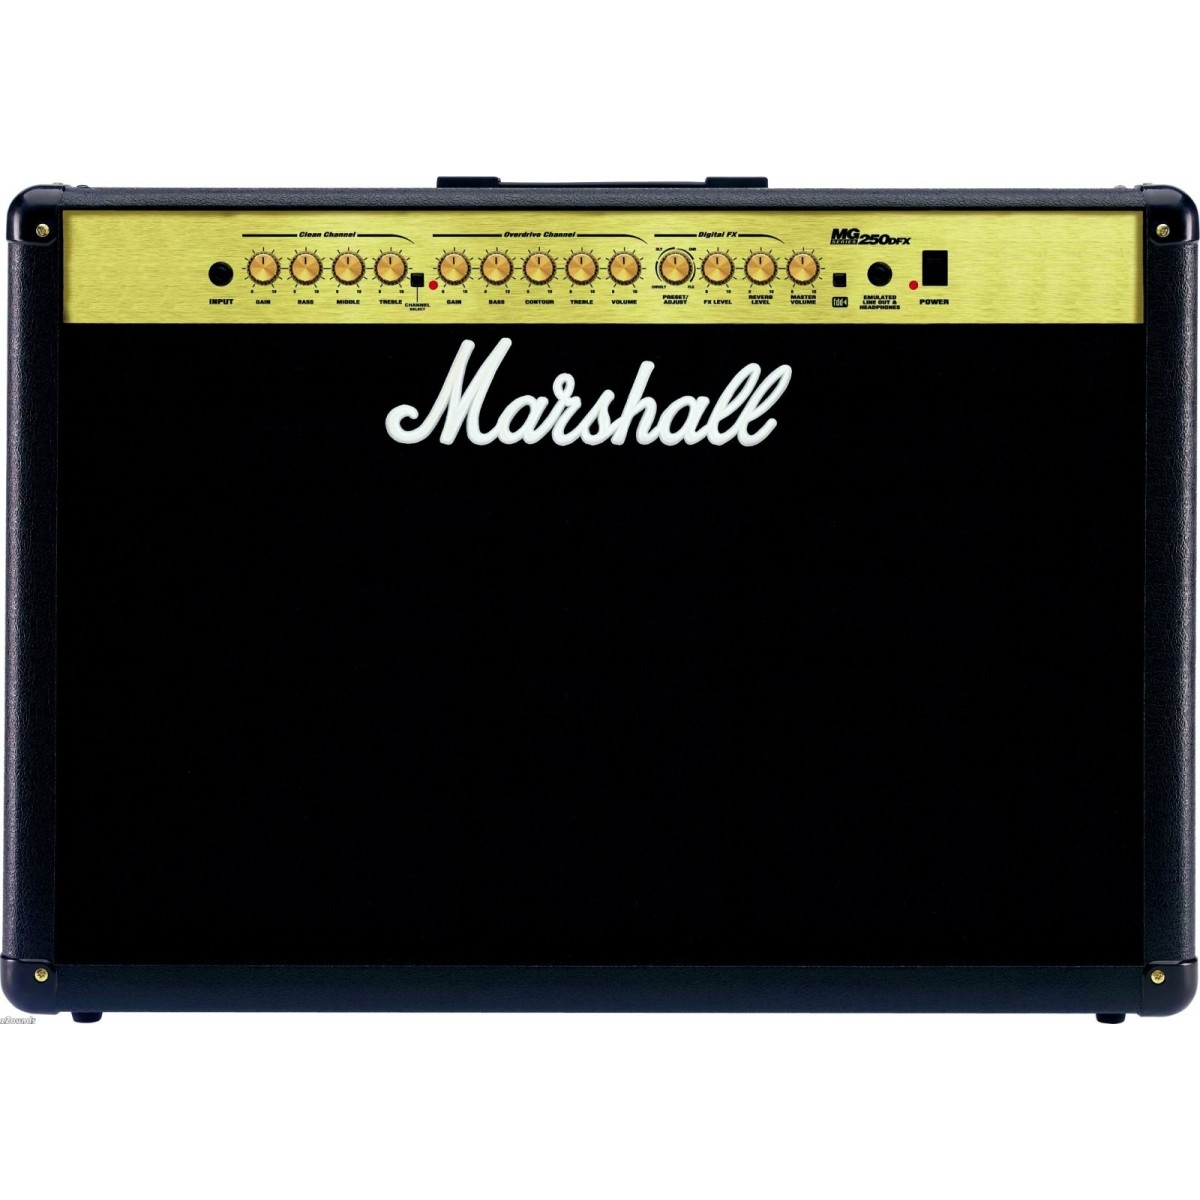 Marshall MG250DFX Guitar Amplifier - Guitar Amps - Guitars